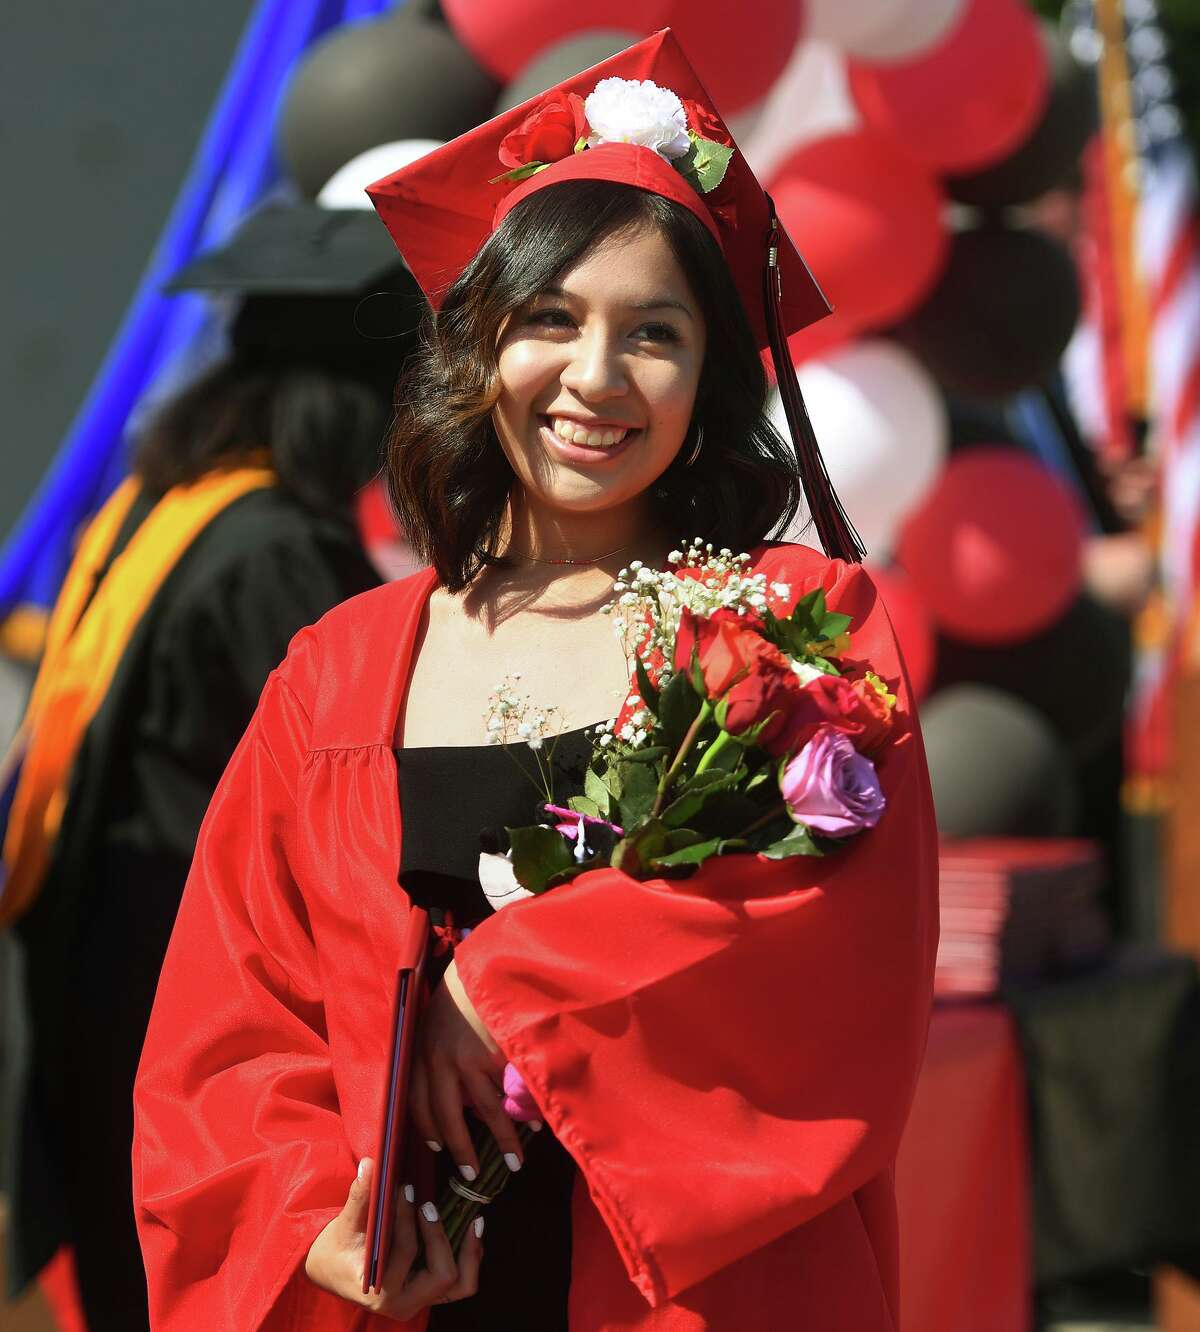 Central High School graduate Wendy Benitez walks with her diploma during day two of the school's three day drive up graduation ceremony at the school in Bridgeport, Conn. on Tuesday, June 23, 2020.